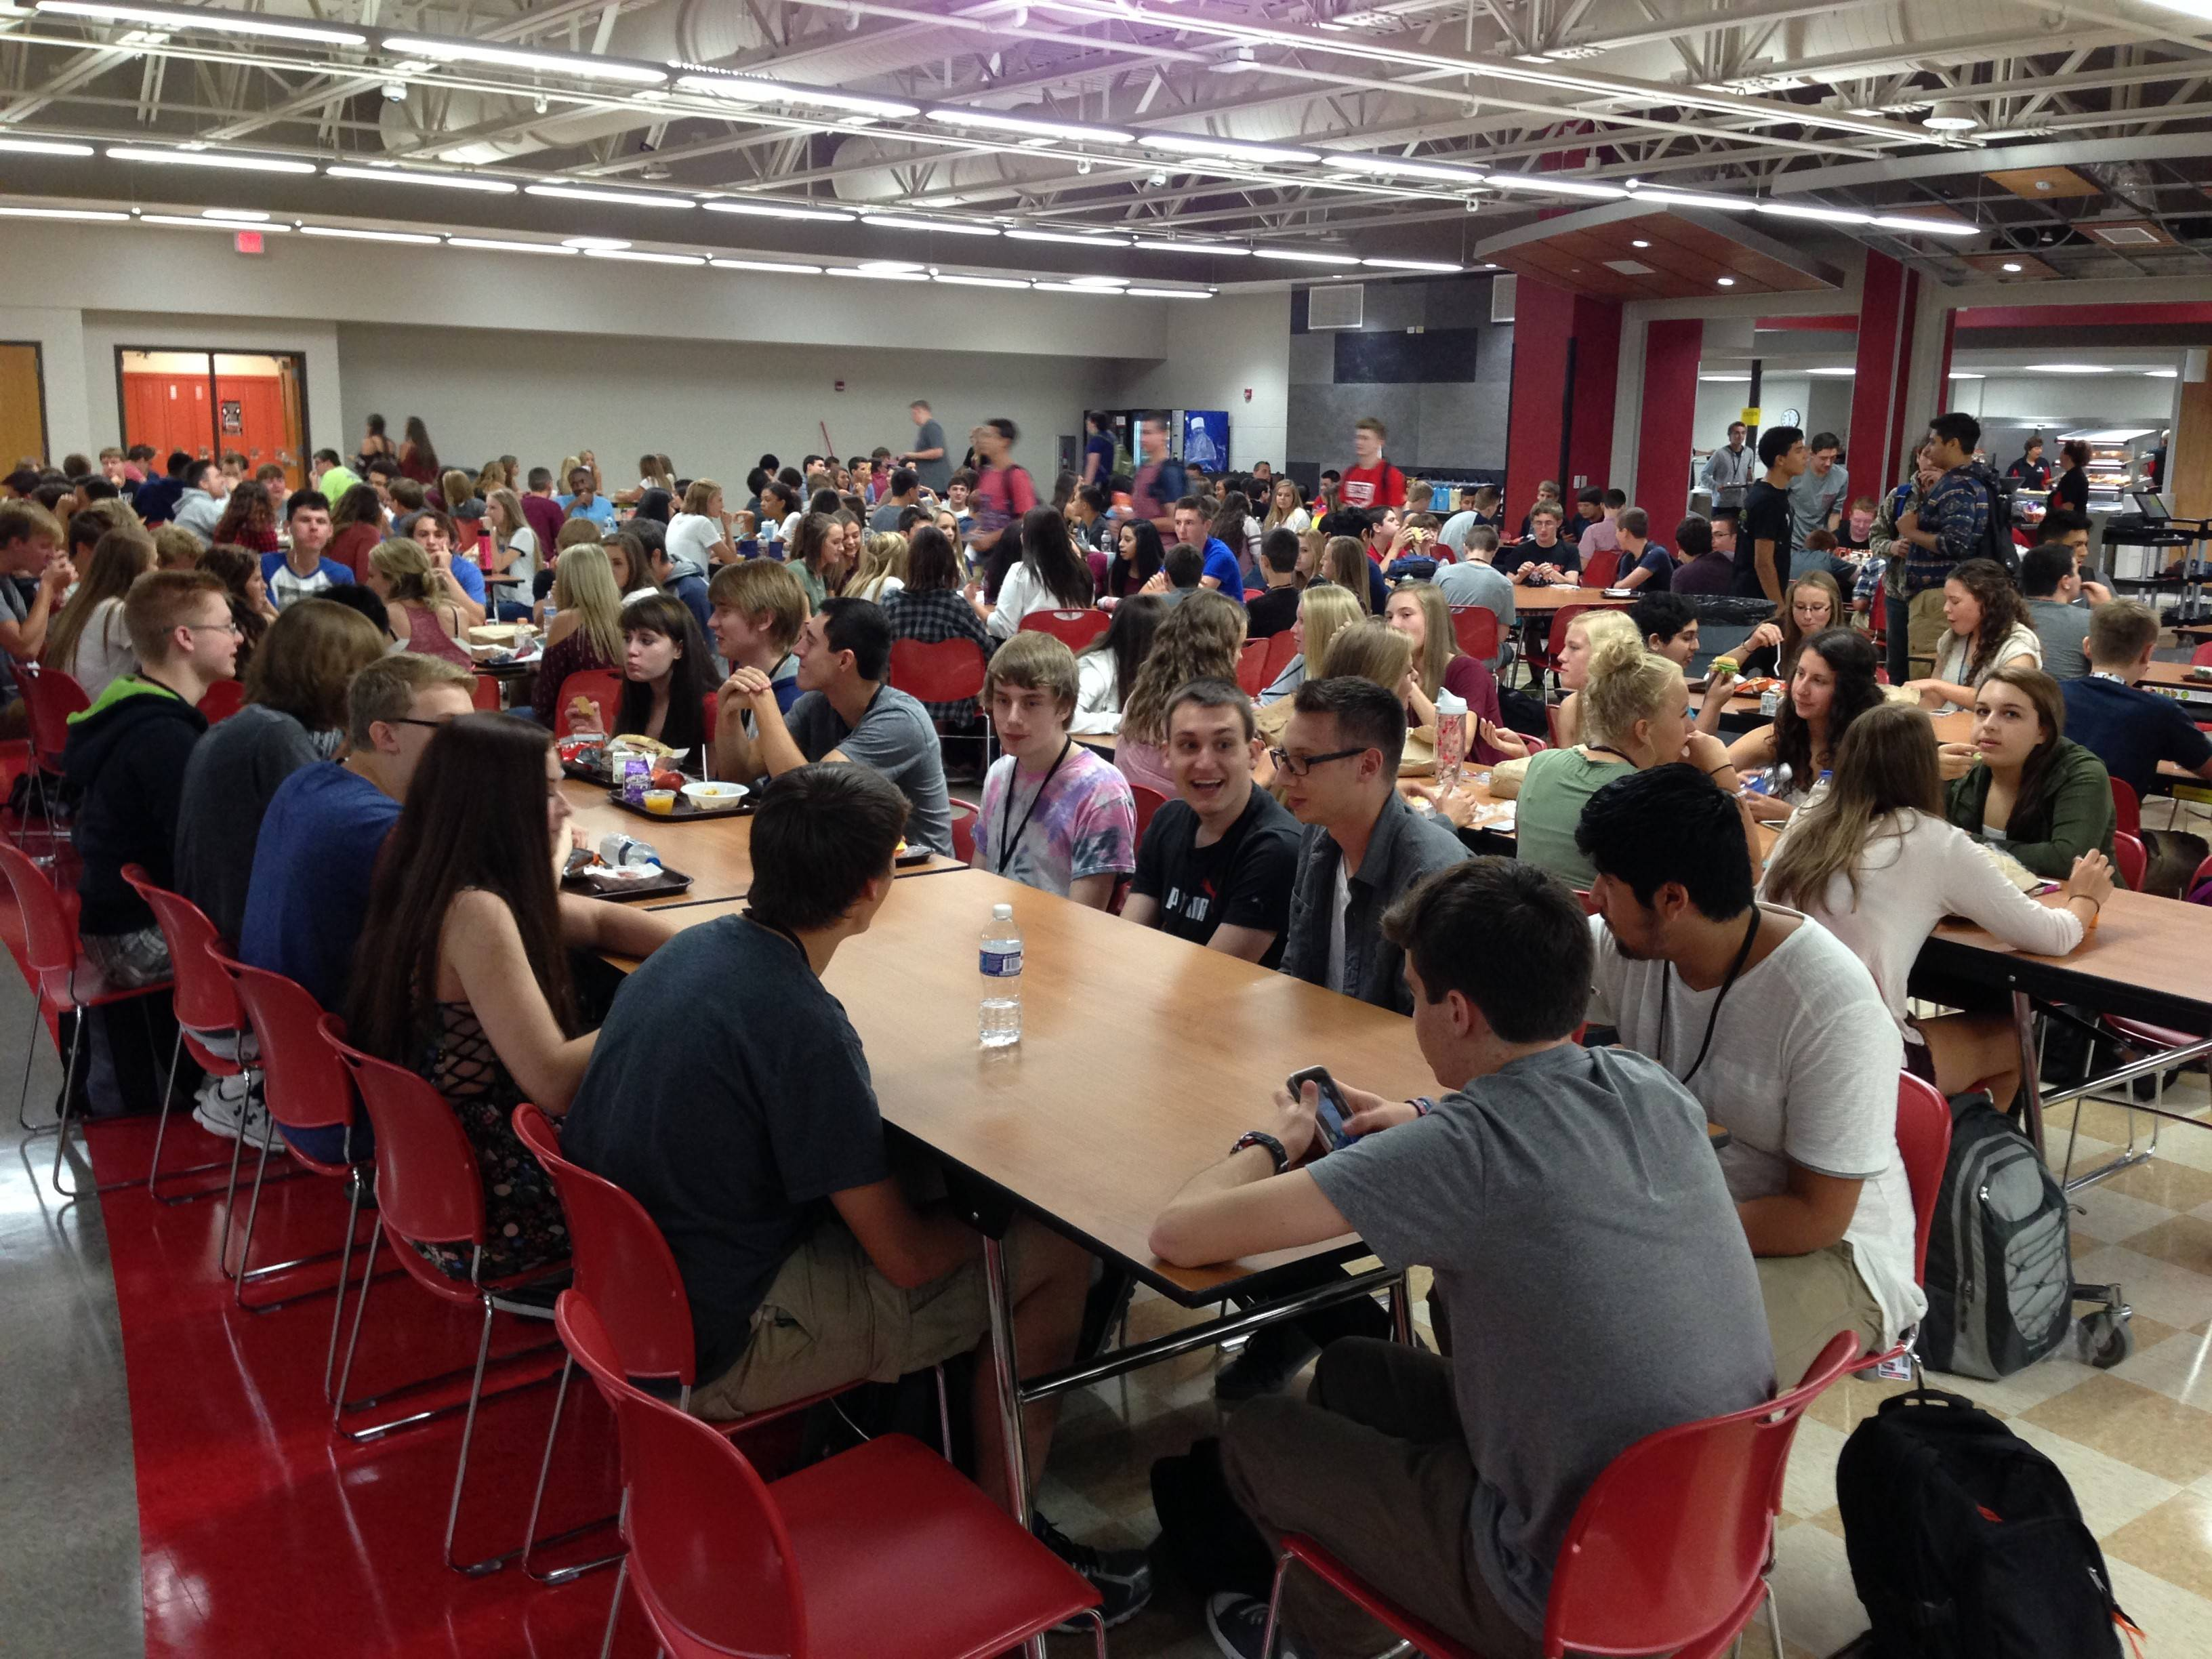 Huntley High School students Wednesday set foot in the revamped cafeteria/commons area, designed more like a college food court, on the first day of classes. Officials expect between 2,200 and 2,500 students will use the cafeteria daily.